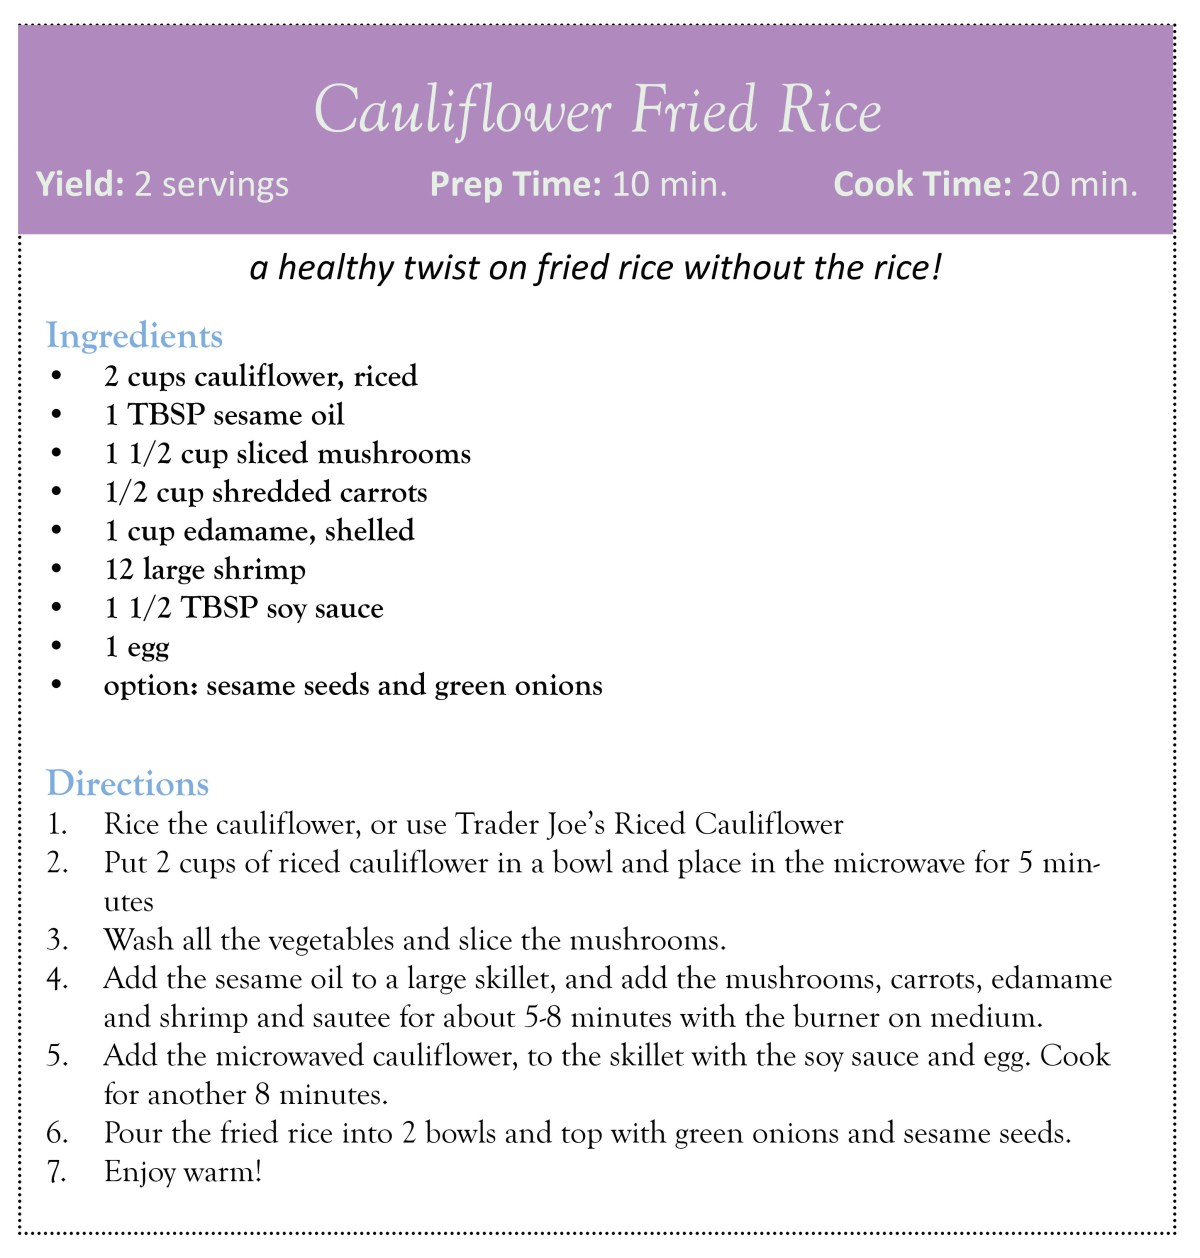 cauliflower fried rice.jpg